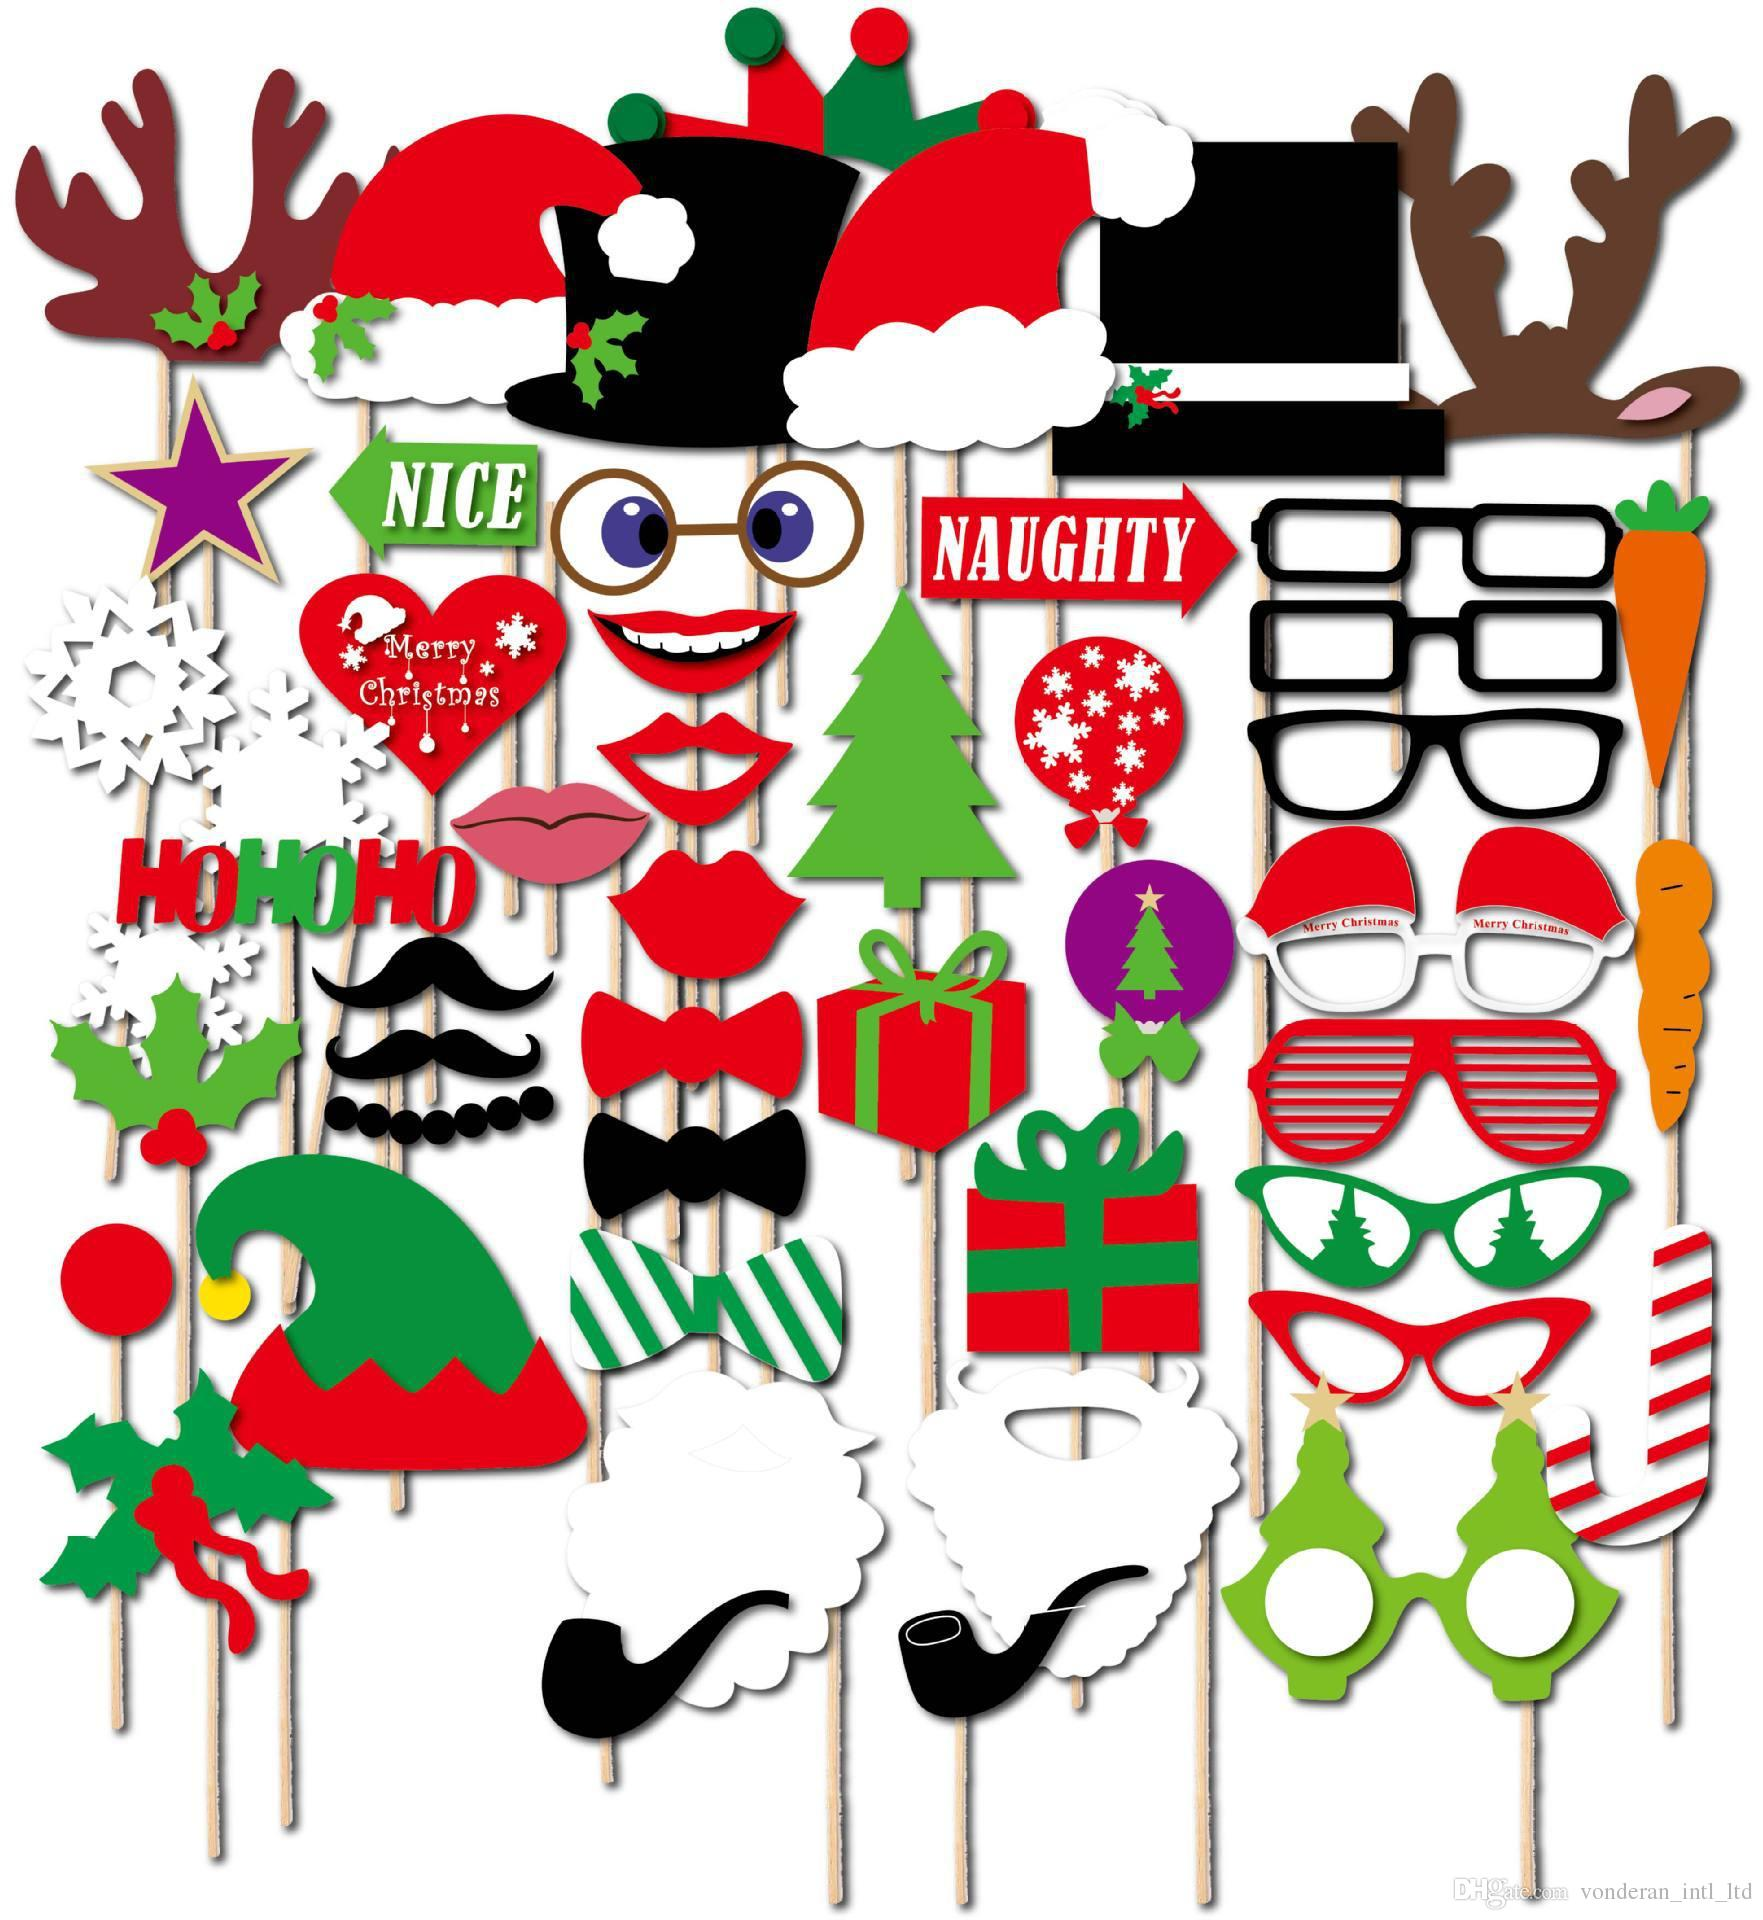 50pcs one set Christmas decorations photo graphed props Funny modeling beard